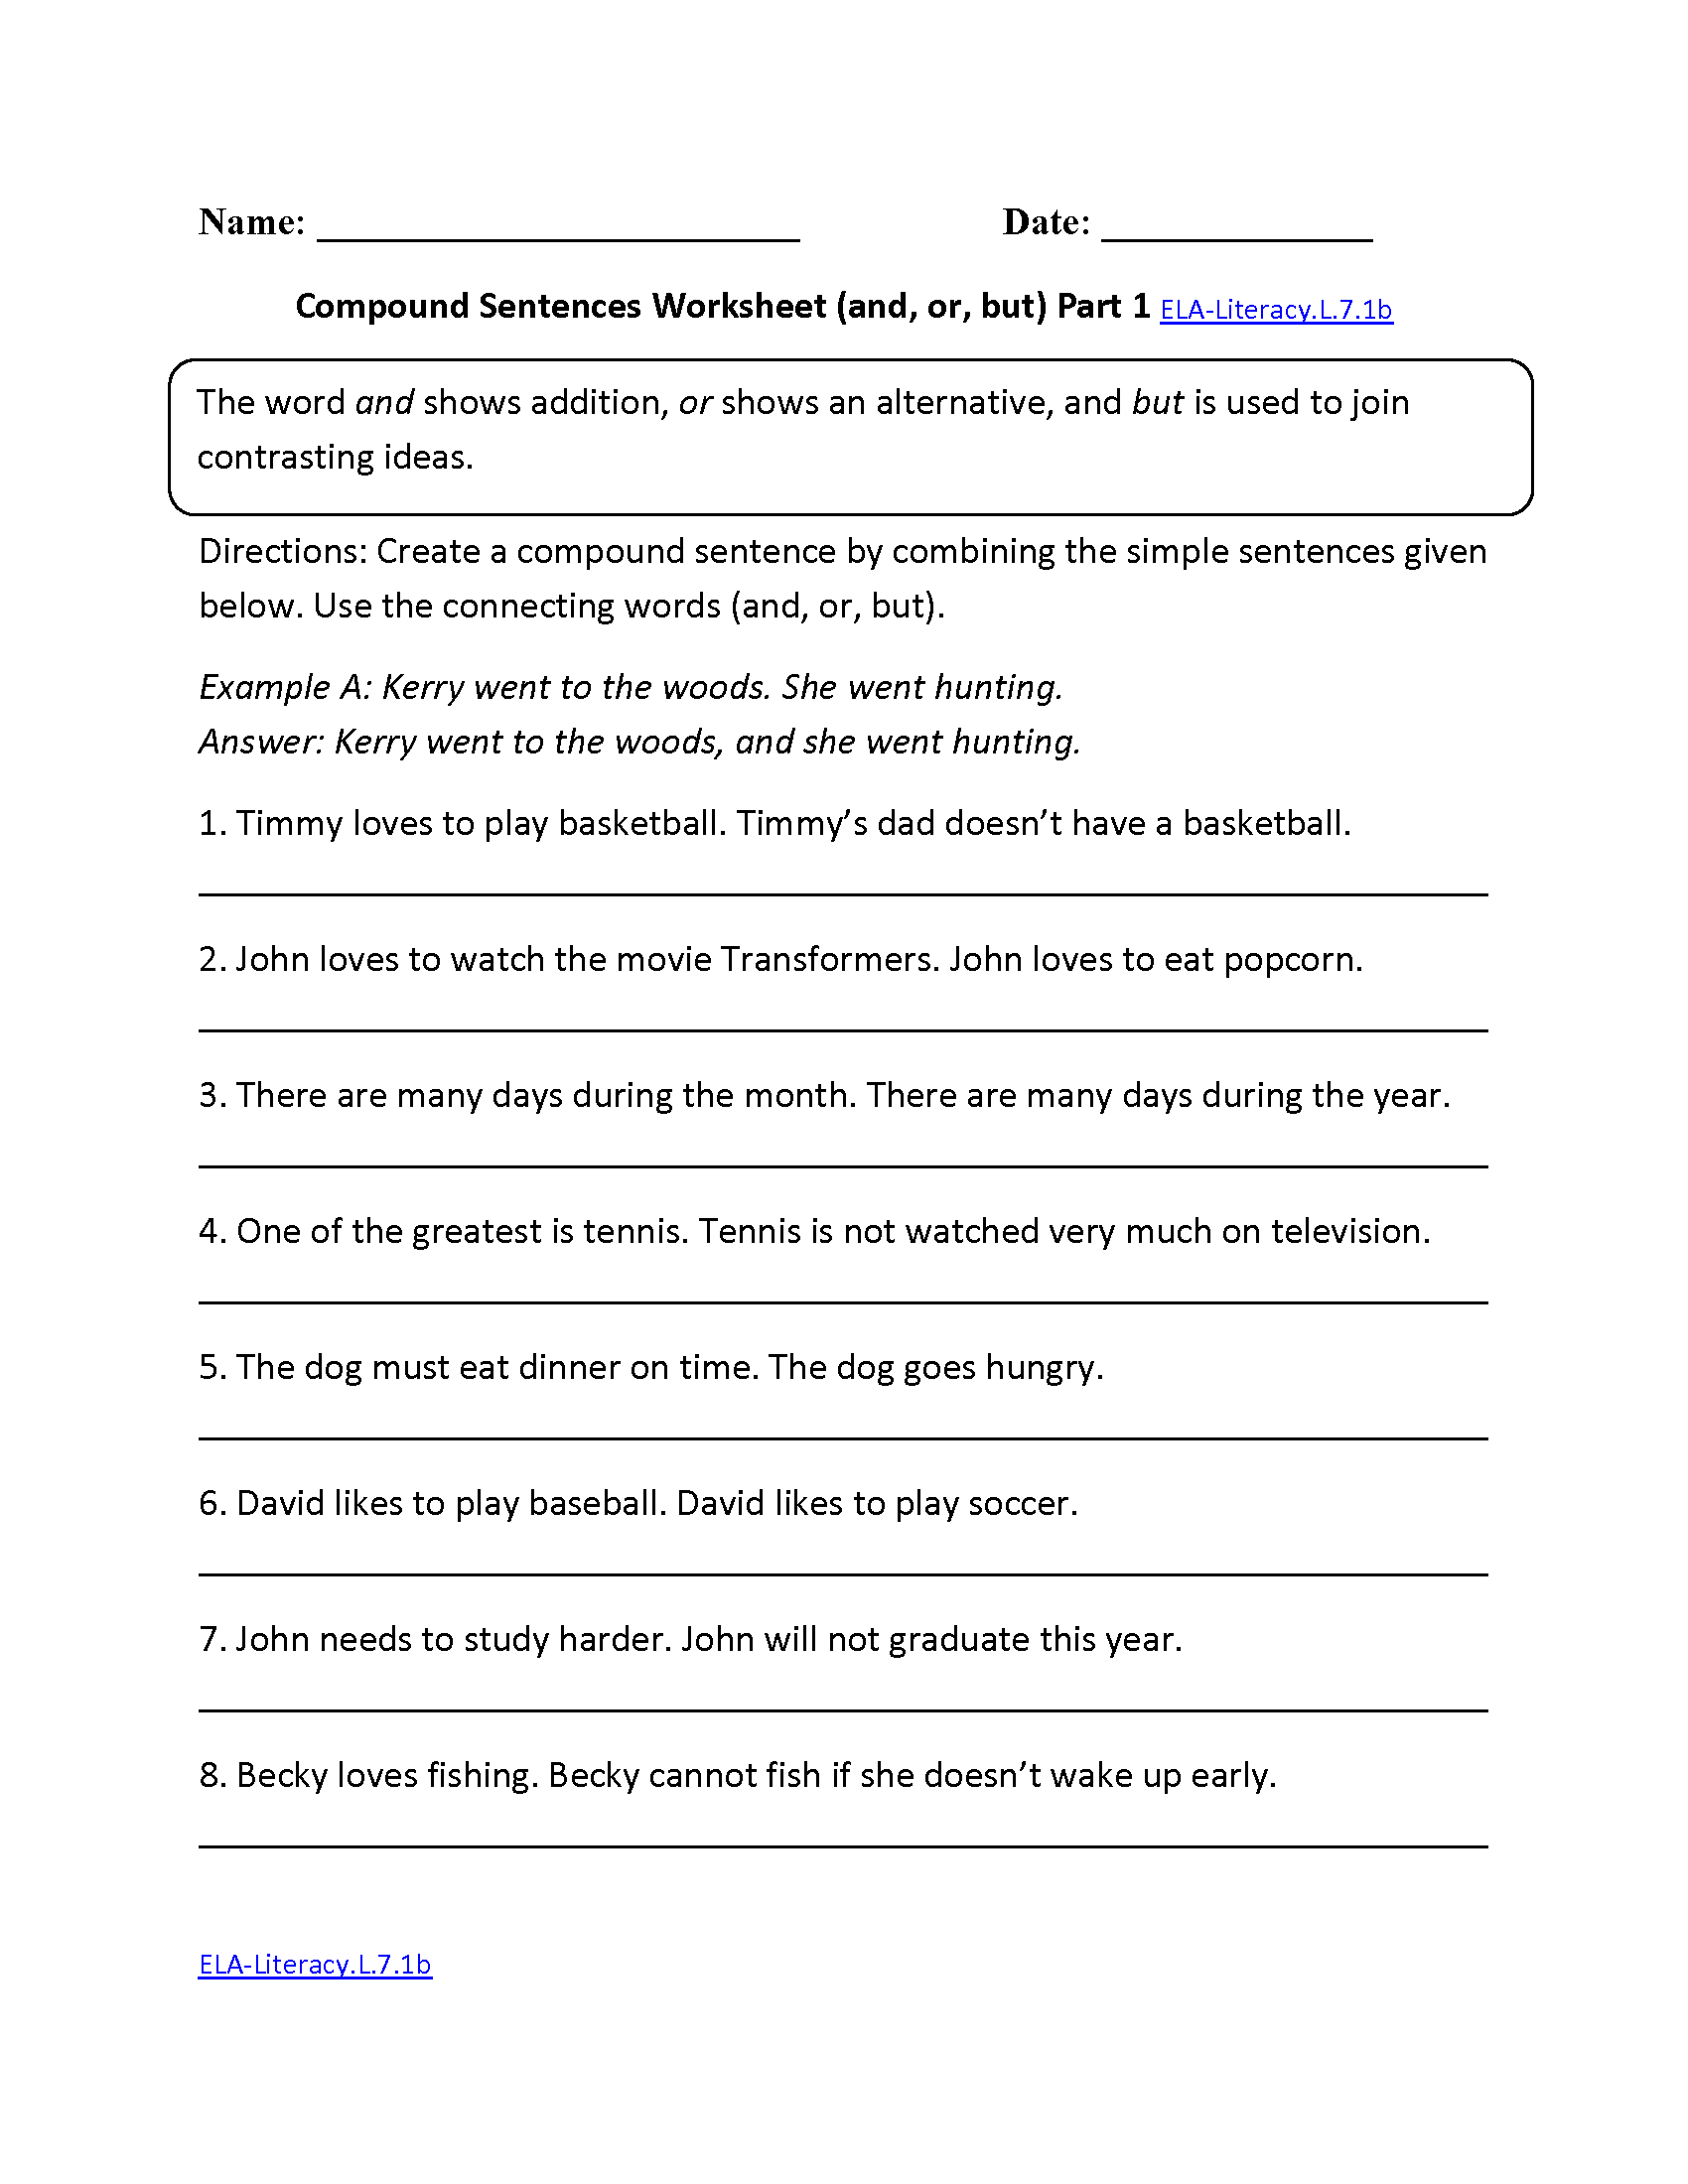 worksheet Worksheets For 7th Grade 7th grade common core language worksheets compound sentences worksheet ela literacy l 7 1b worksheet